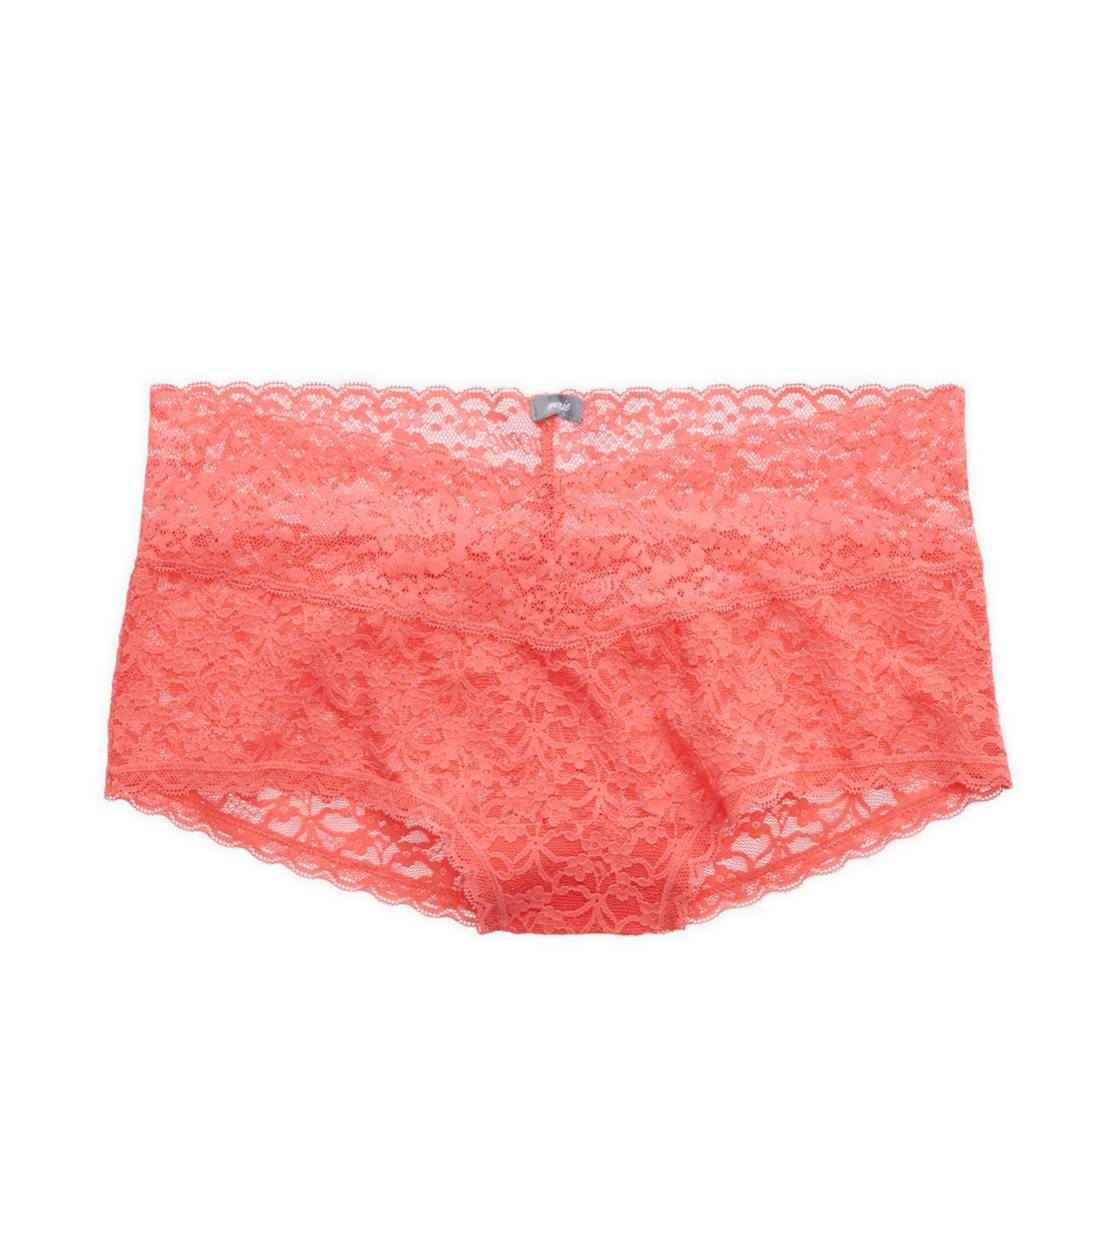 Whipped Strawberry Aerie Vintage Lace Girly Short